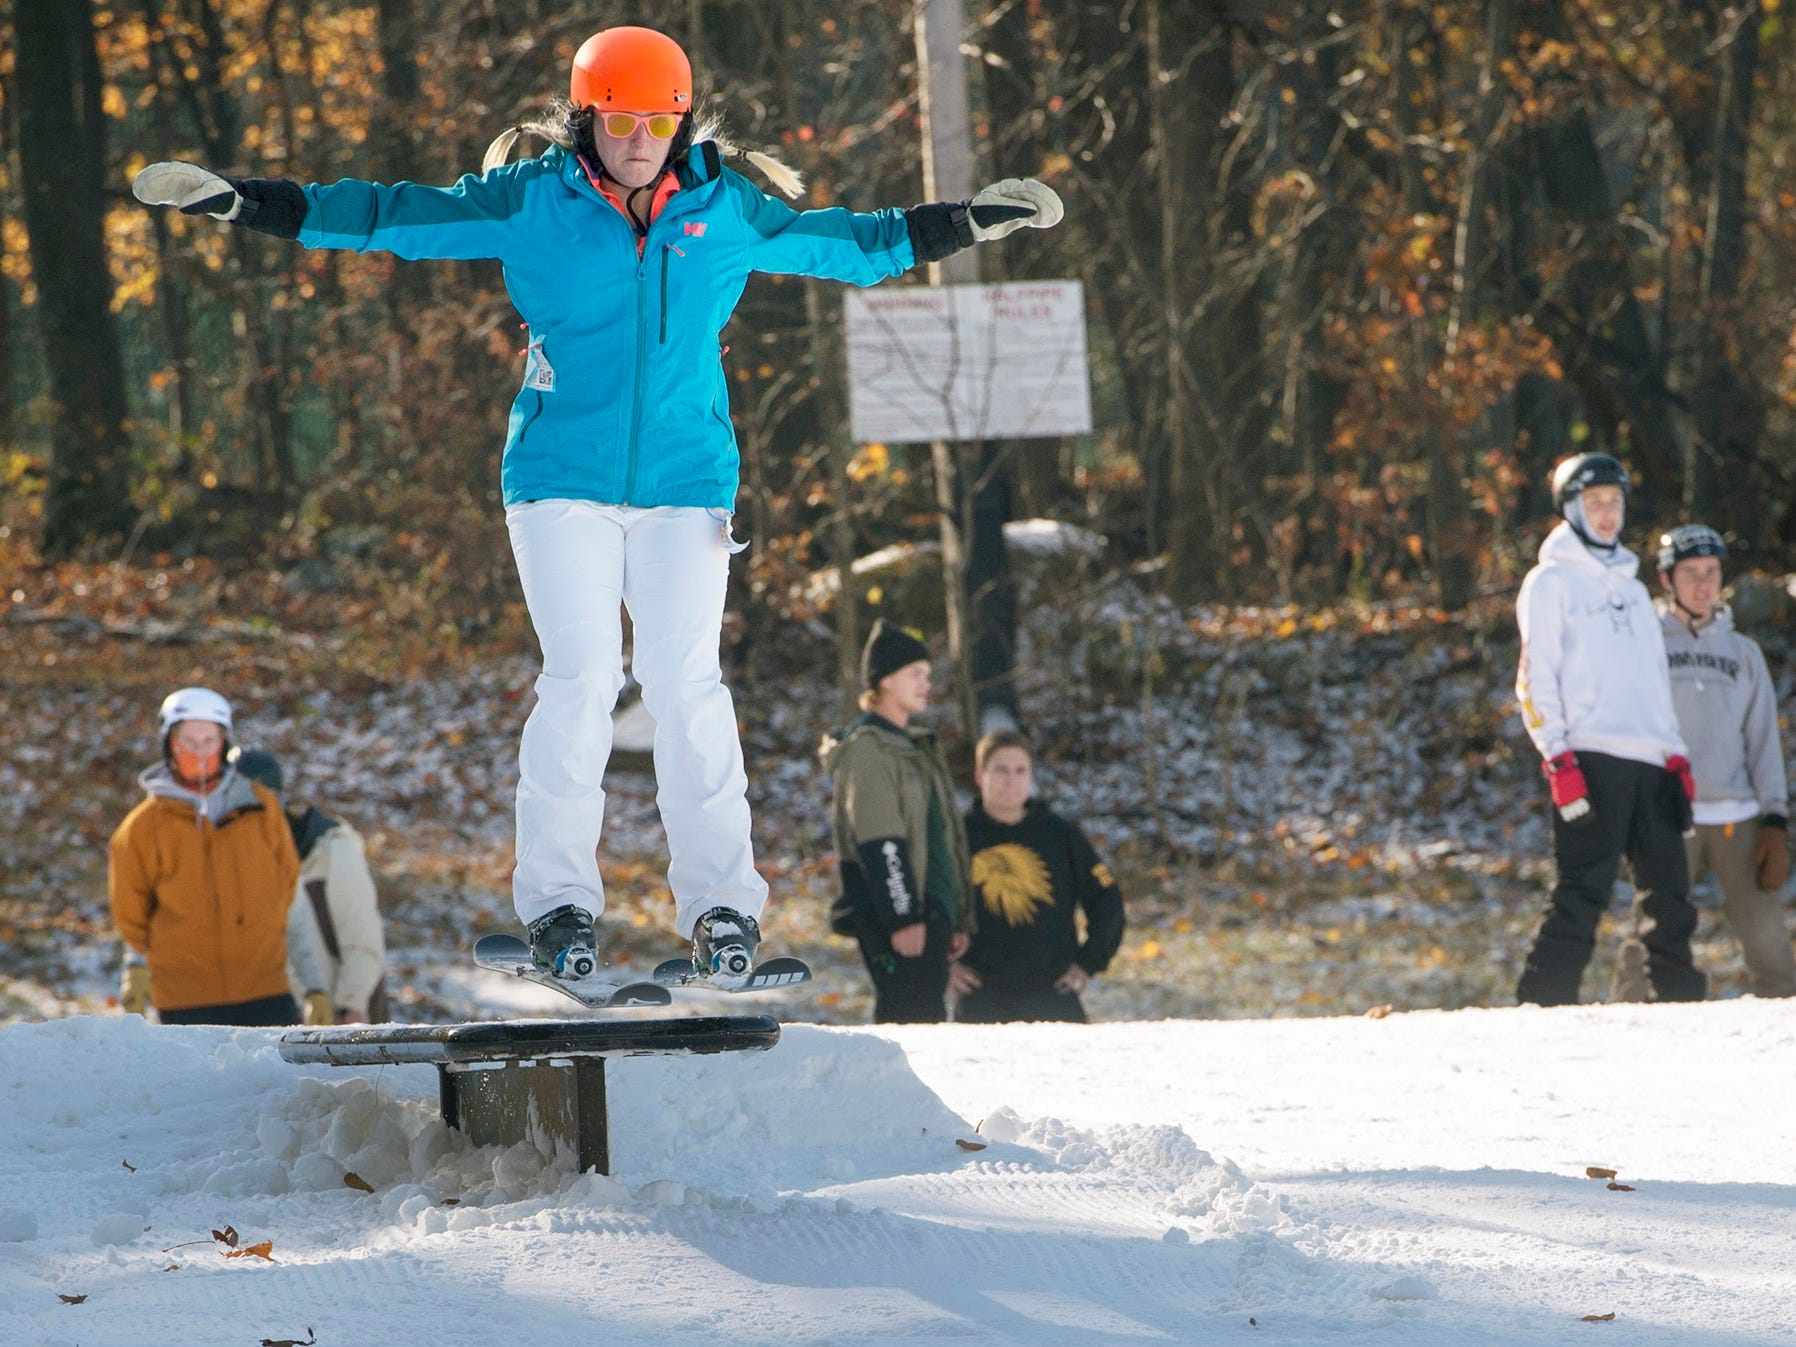 Shannon Rucker, of Tysons Virginia, skis off a table on Sunday at Roundtop Mountain Resort November 12, 2017.